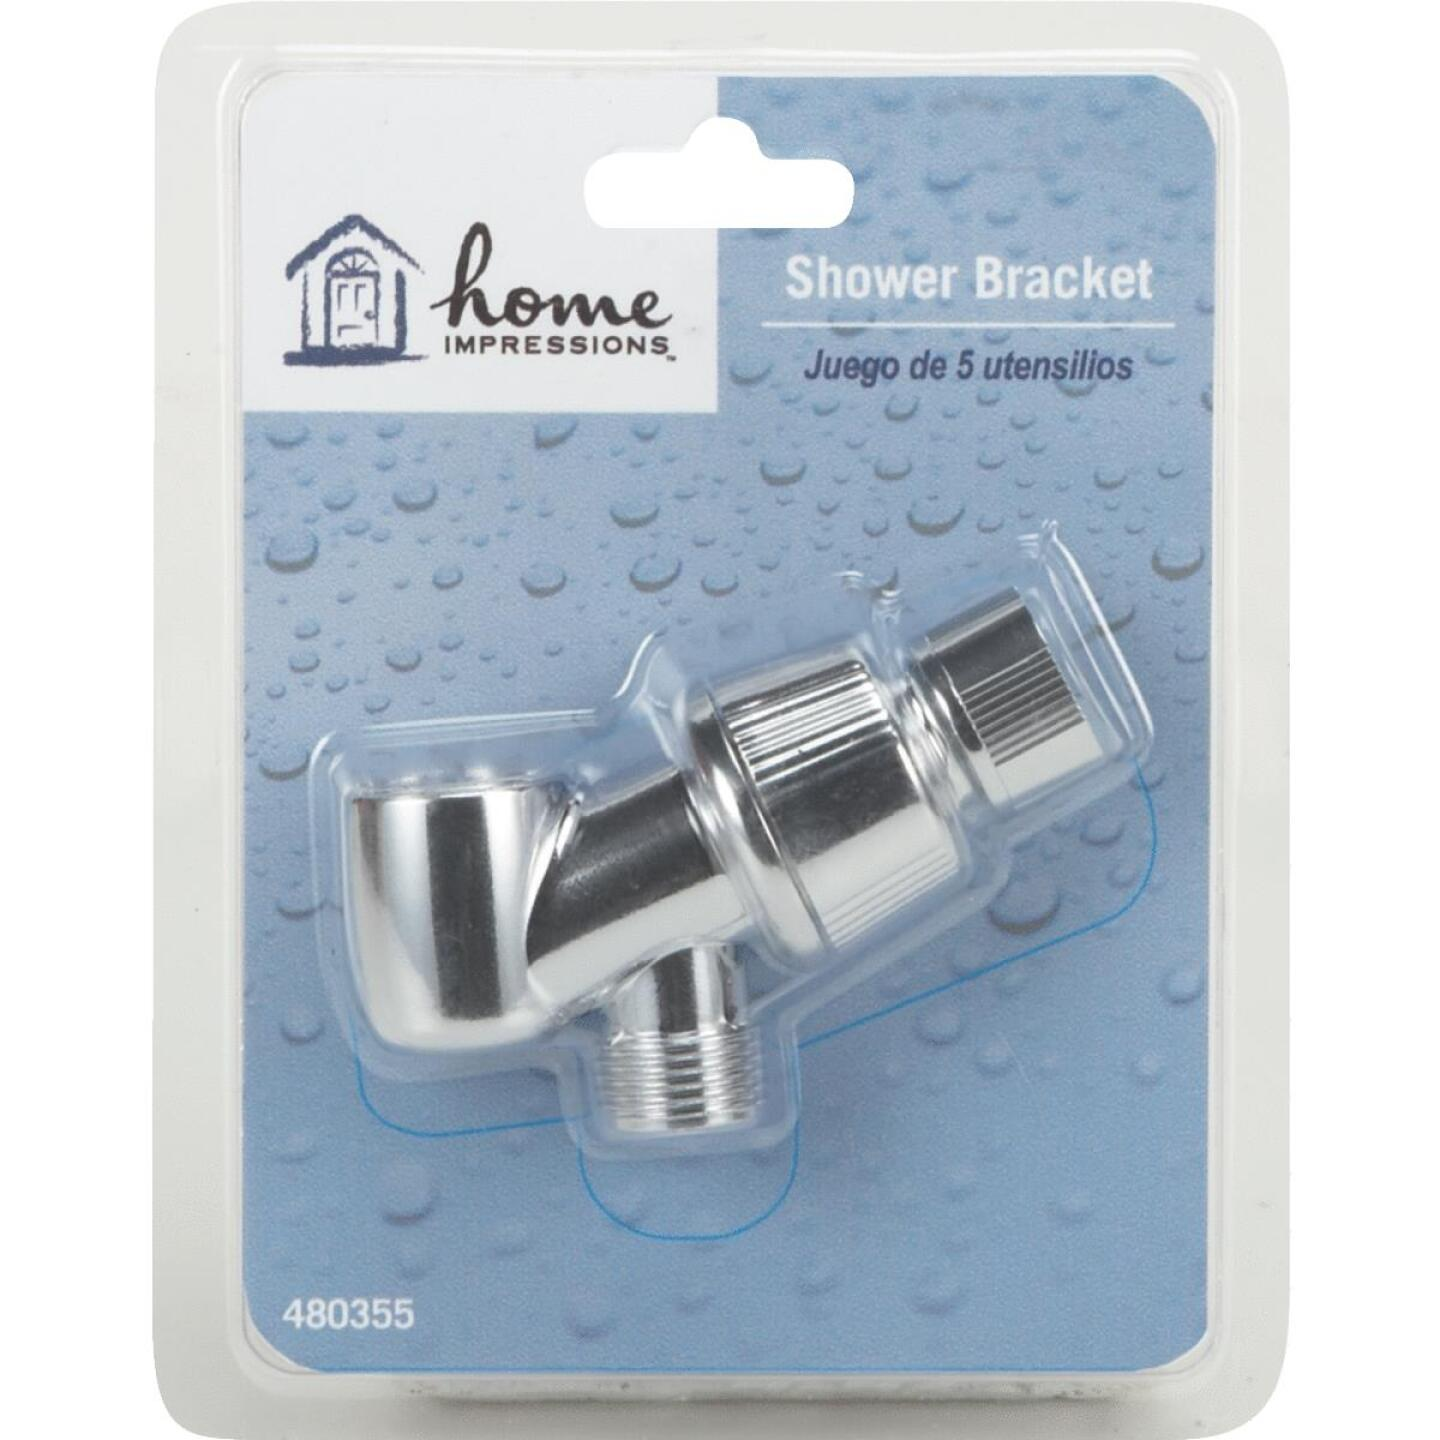 Home Impressions Chrome-Plated Plastic Shower Bracket Image 2